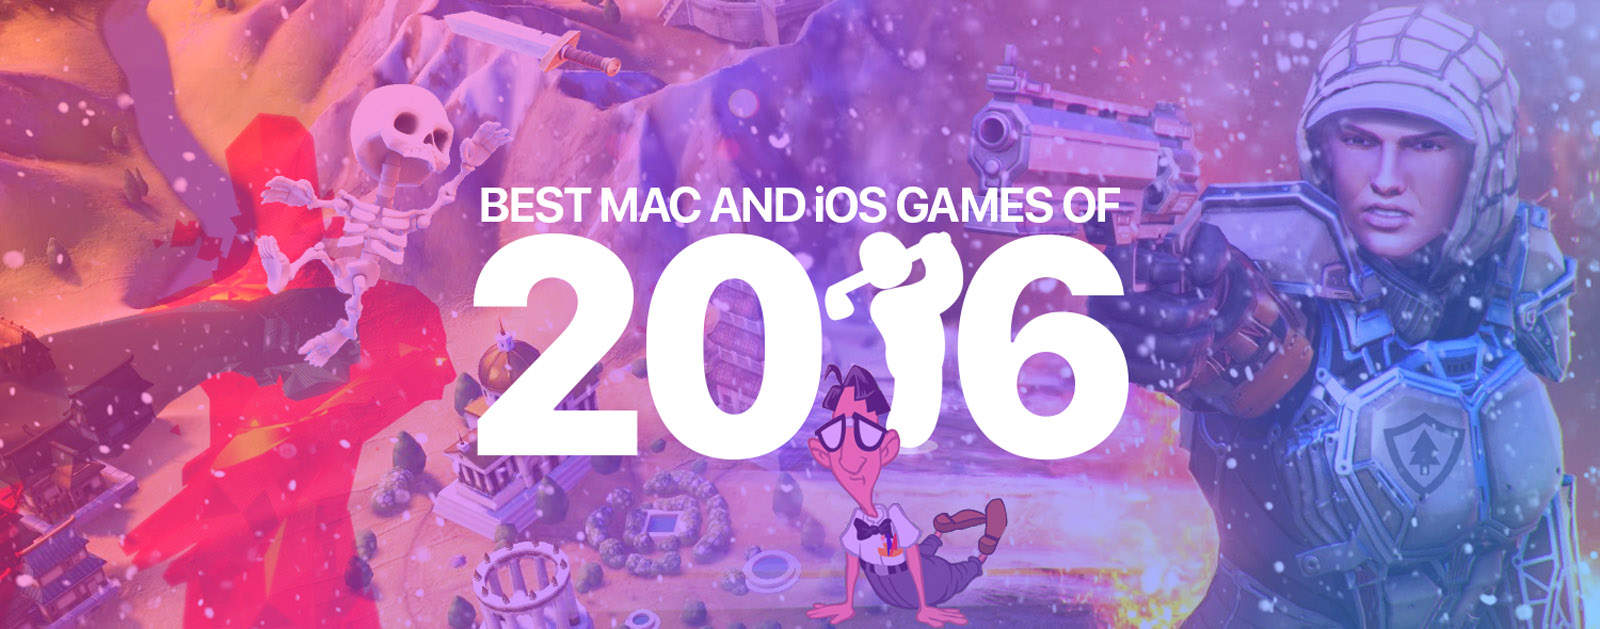 best mac and ios games 2016